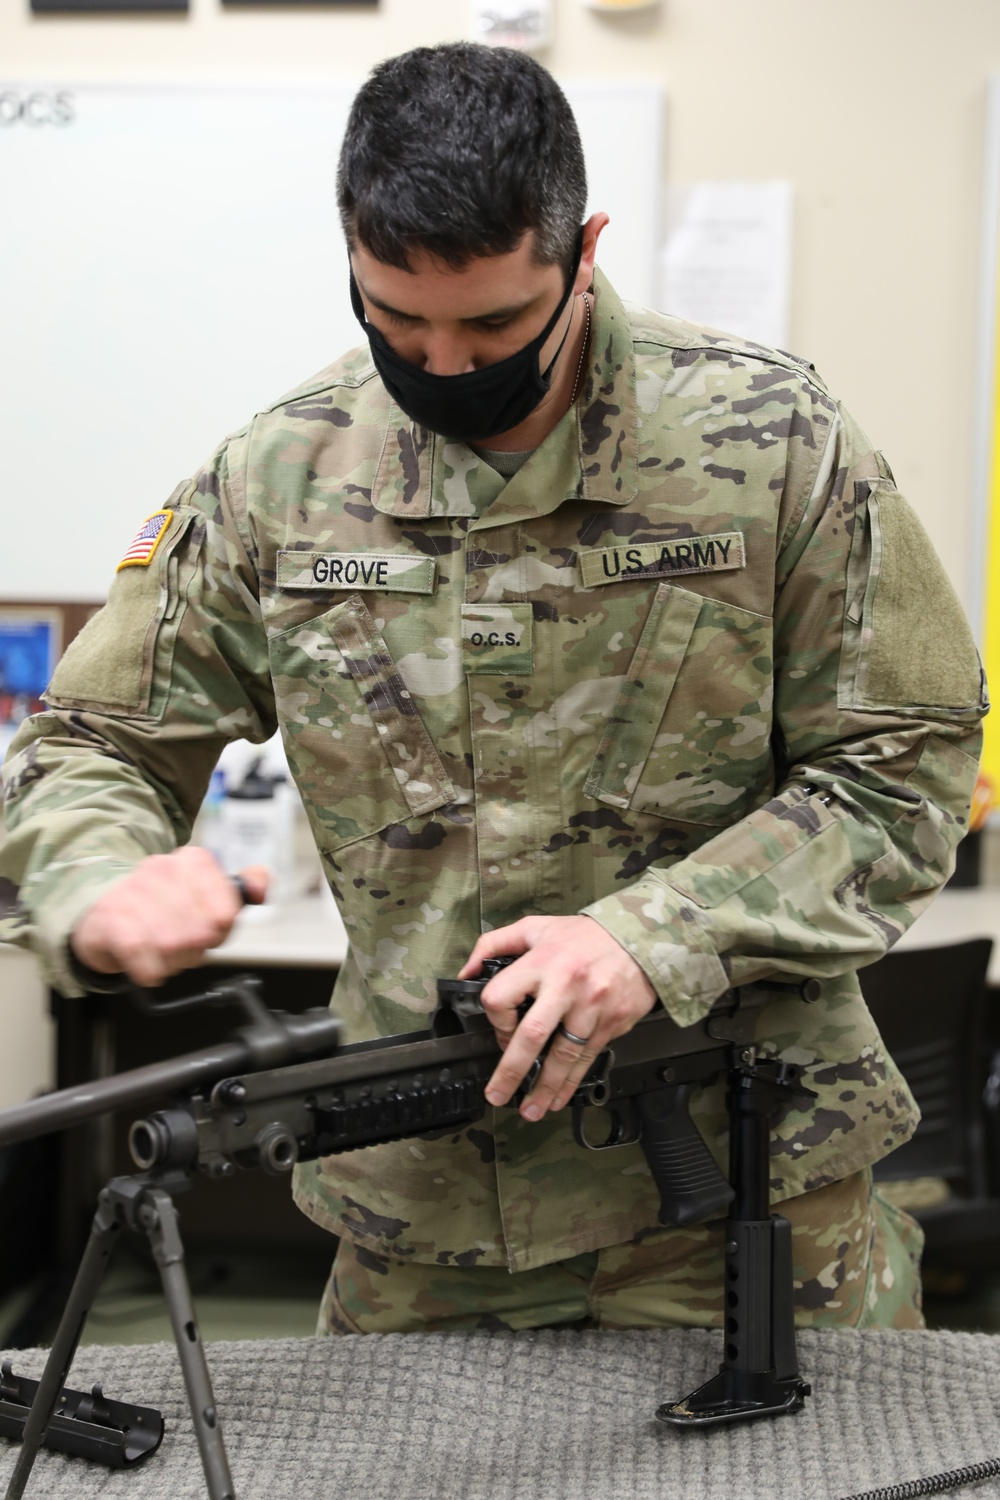 Leading from the front: officer candidates prepare for real-world operations